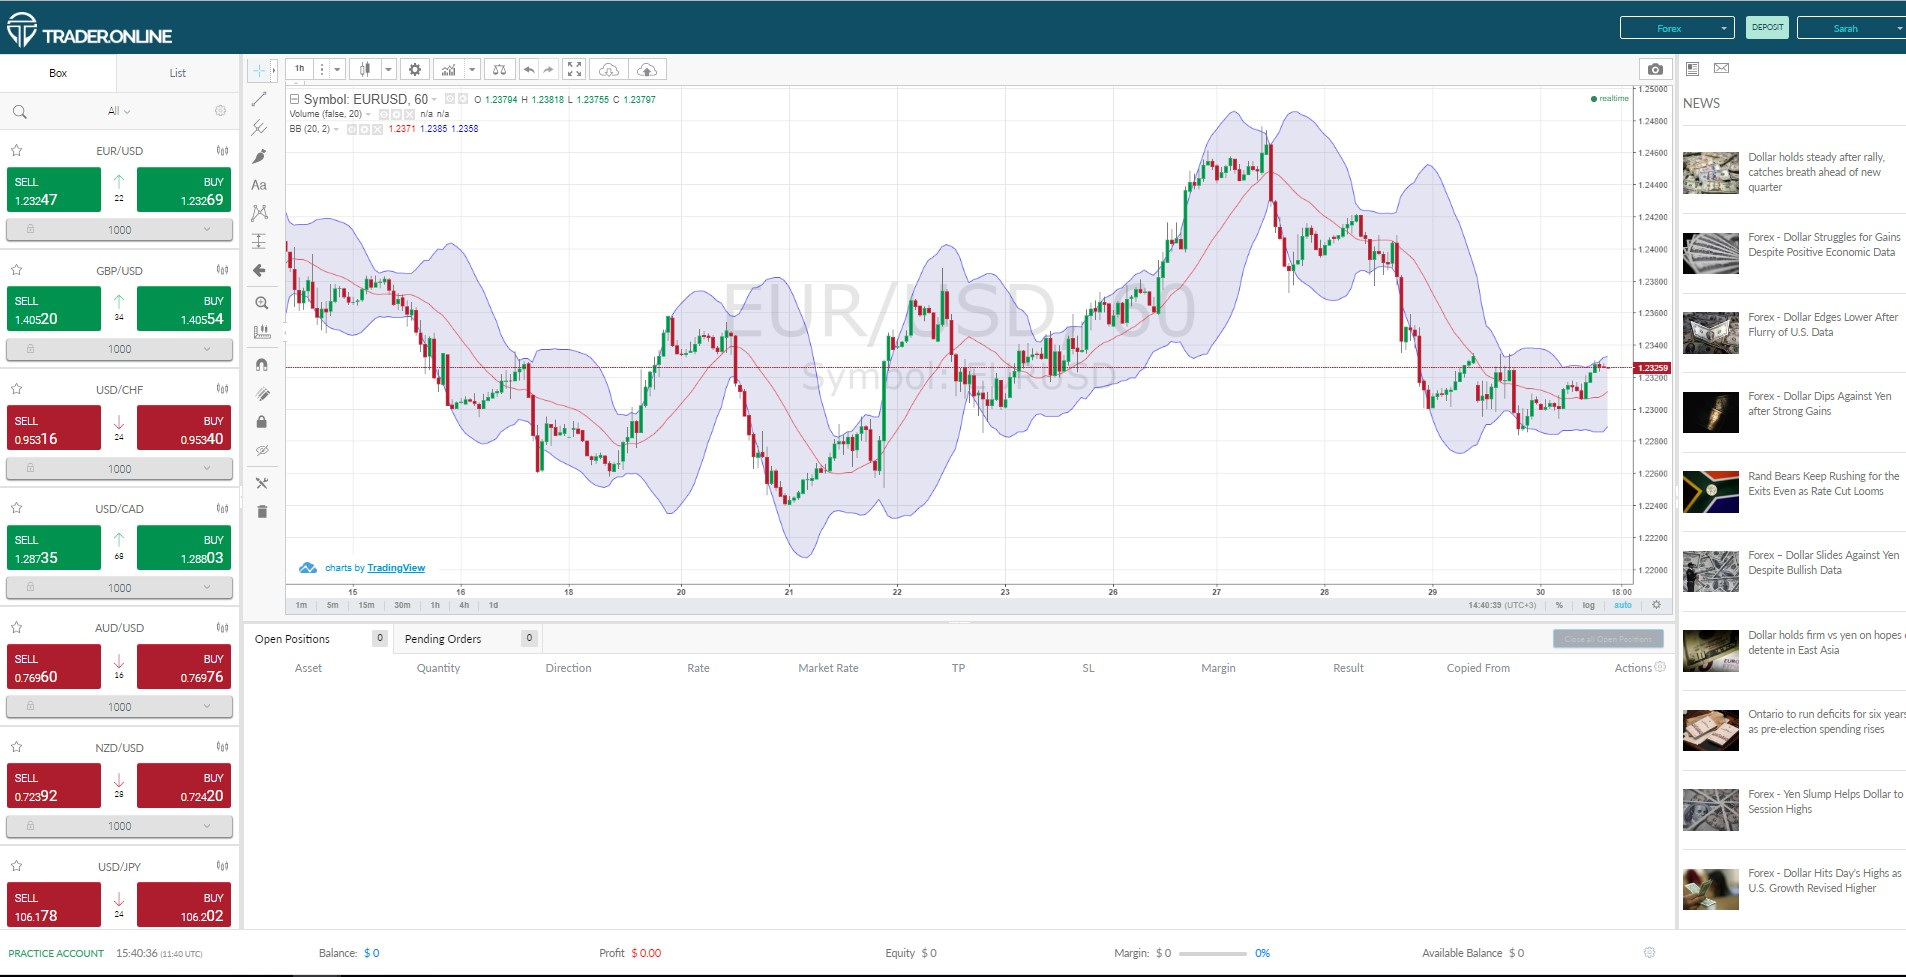 Trader Online Review 7